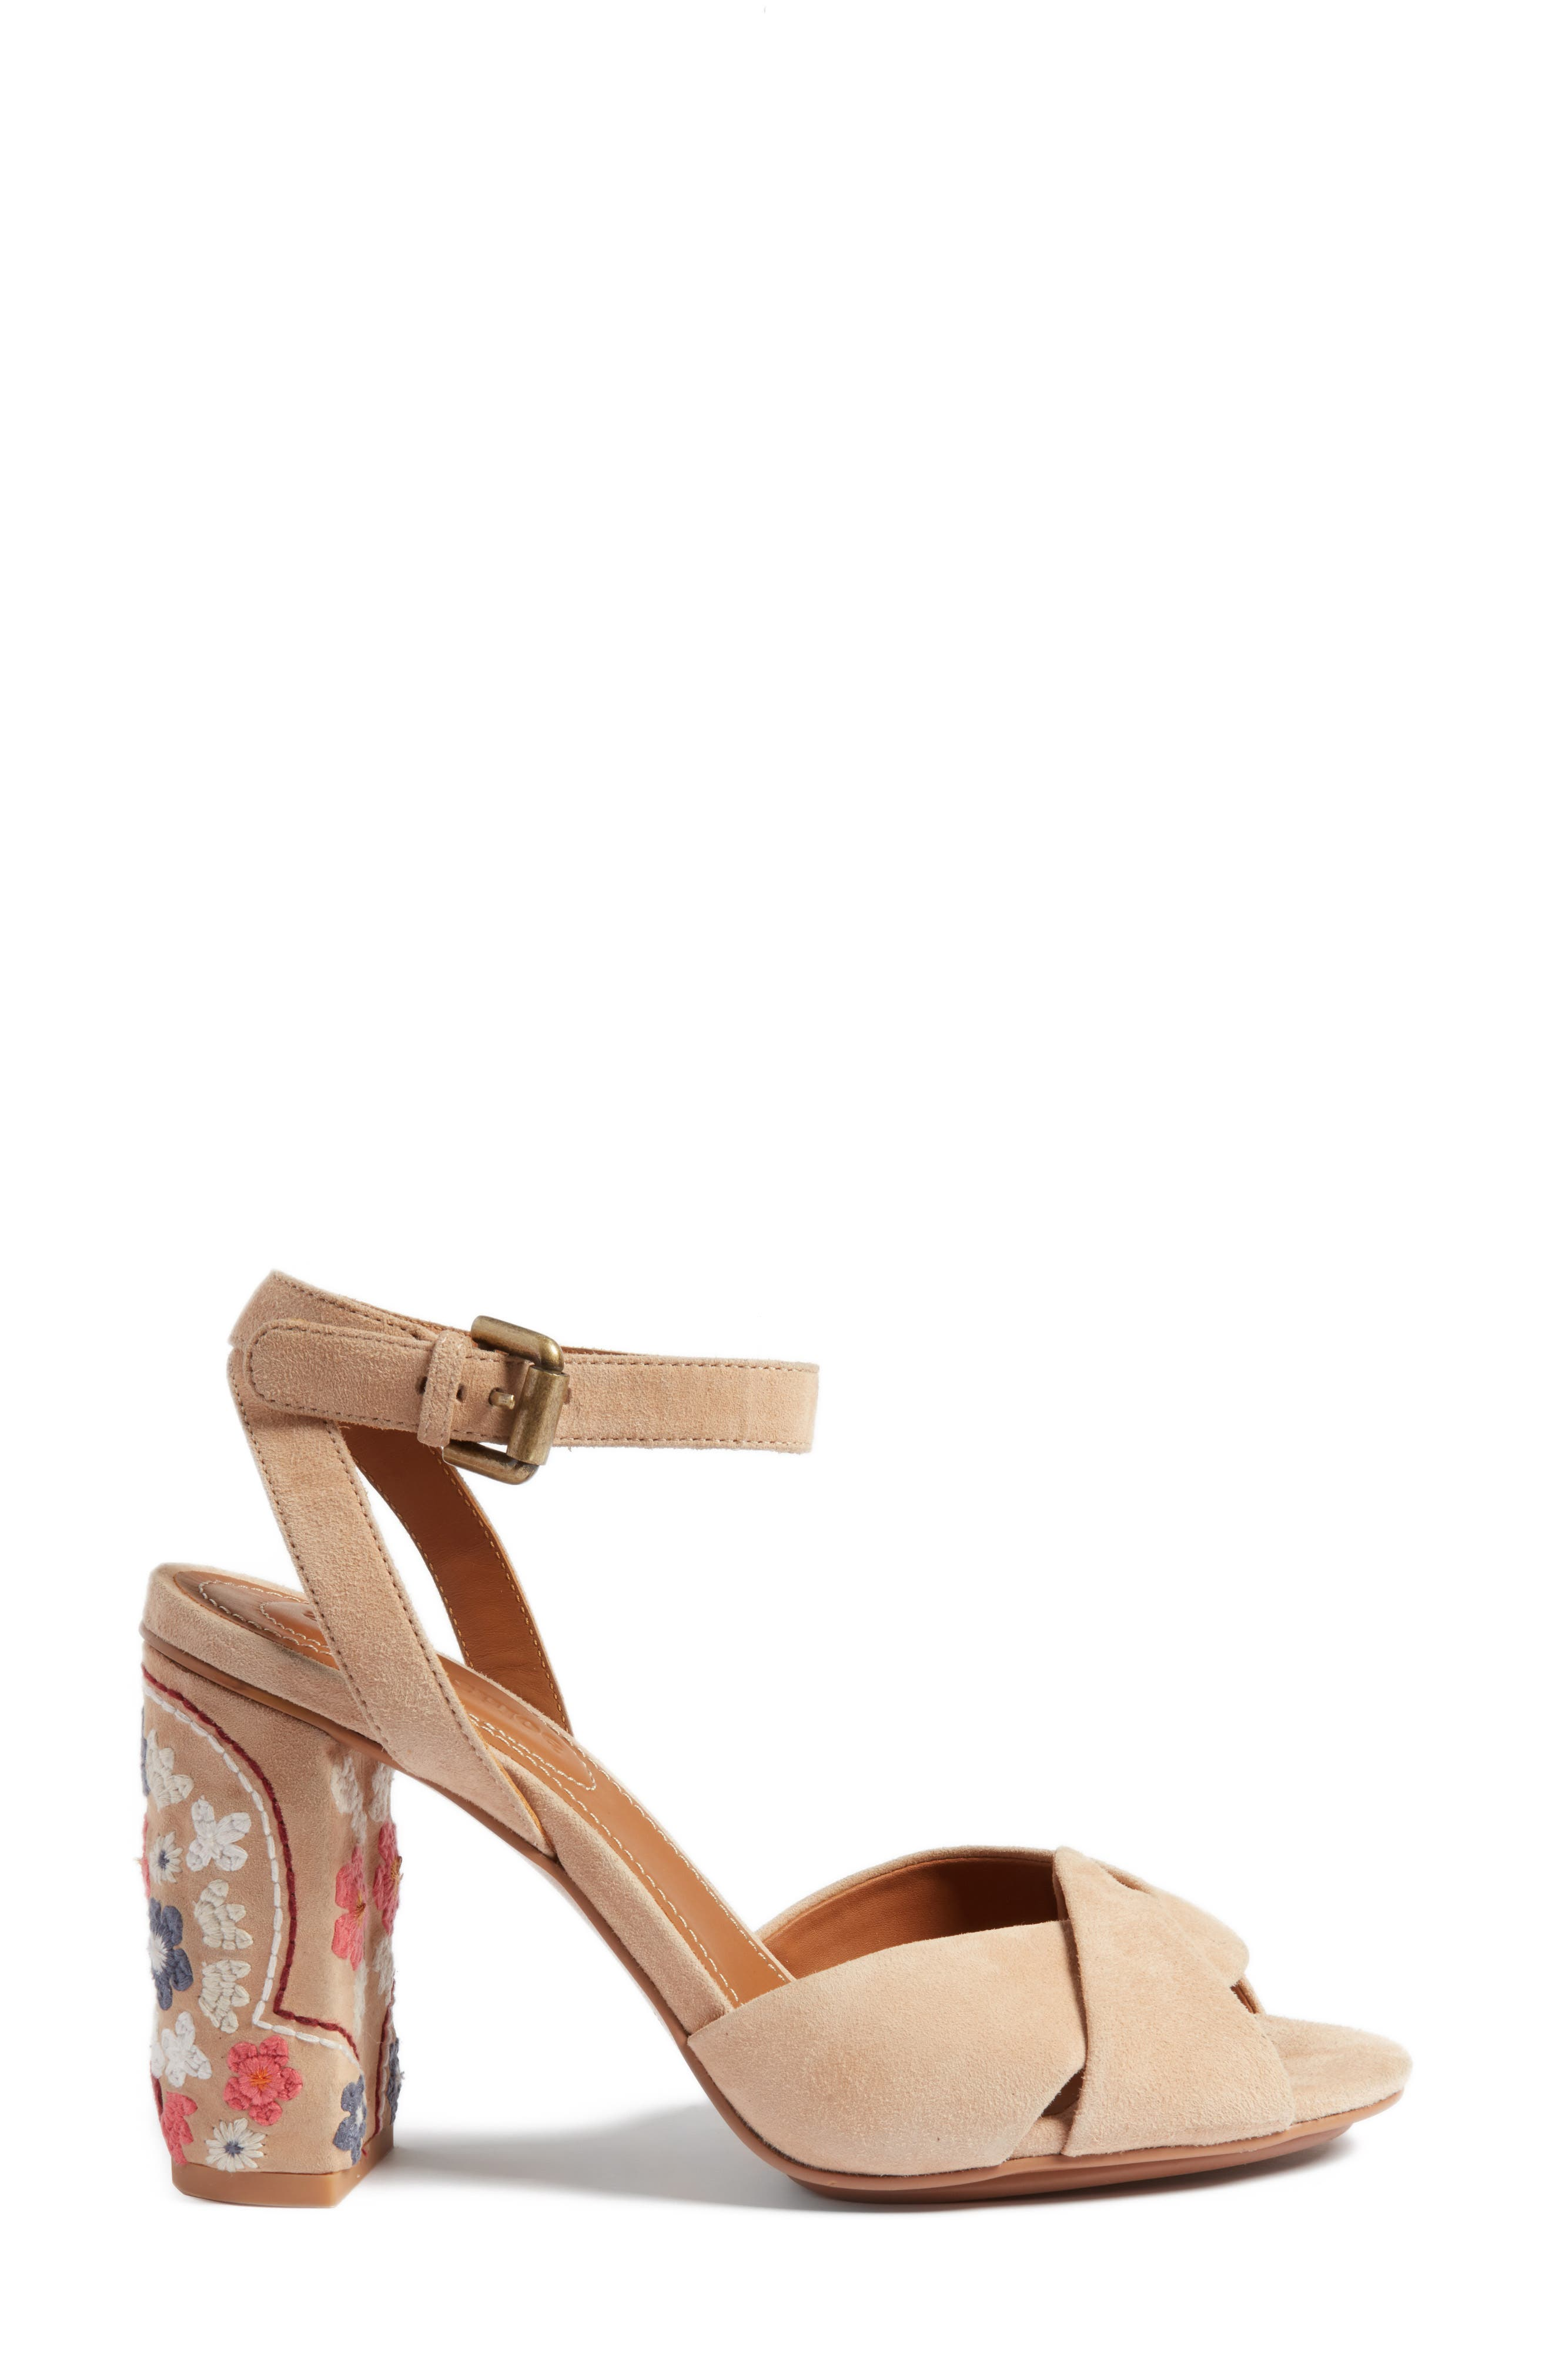 Alternate Image 3  - See by Chloé Gayla Embroidered Block Heel Sandal (Women)